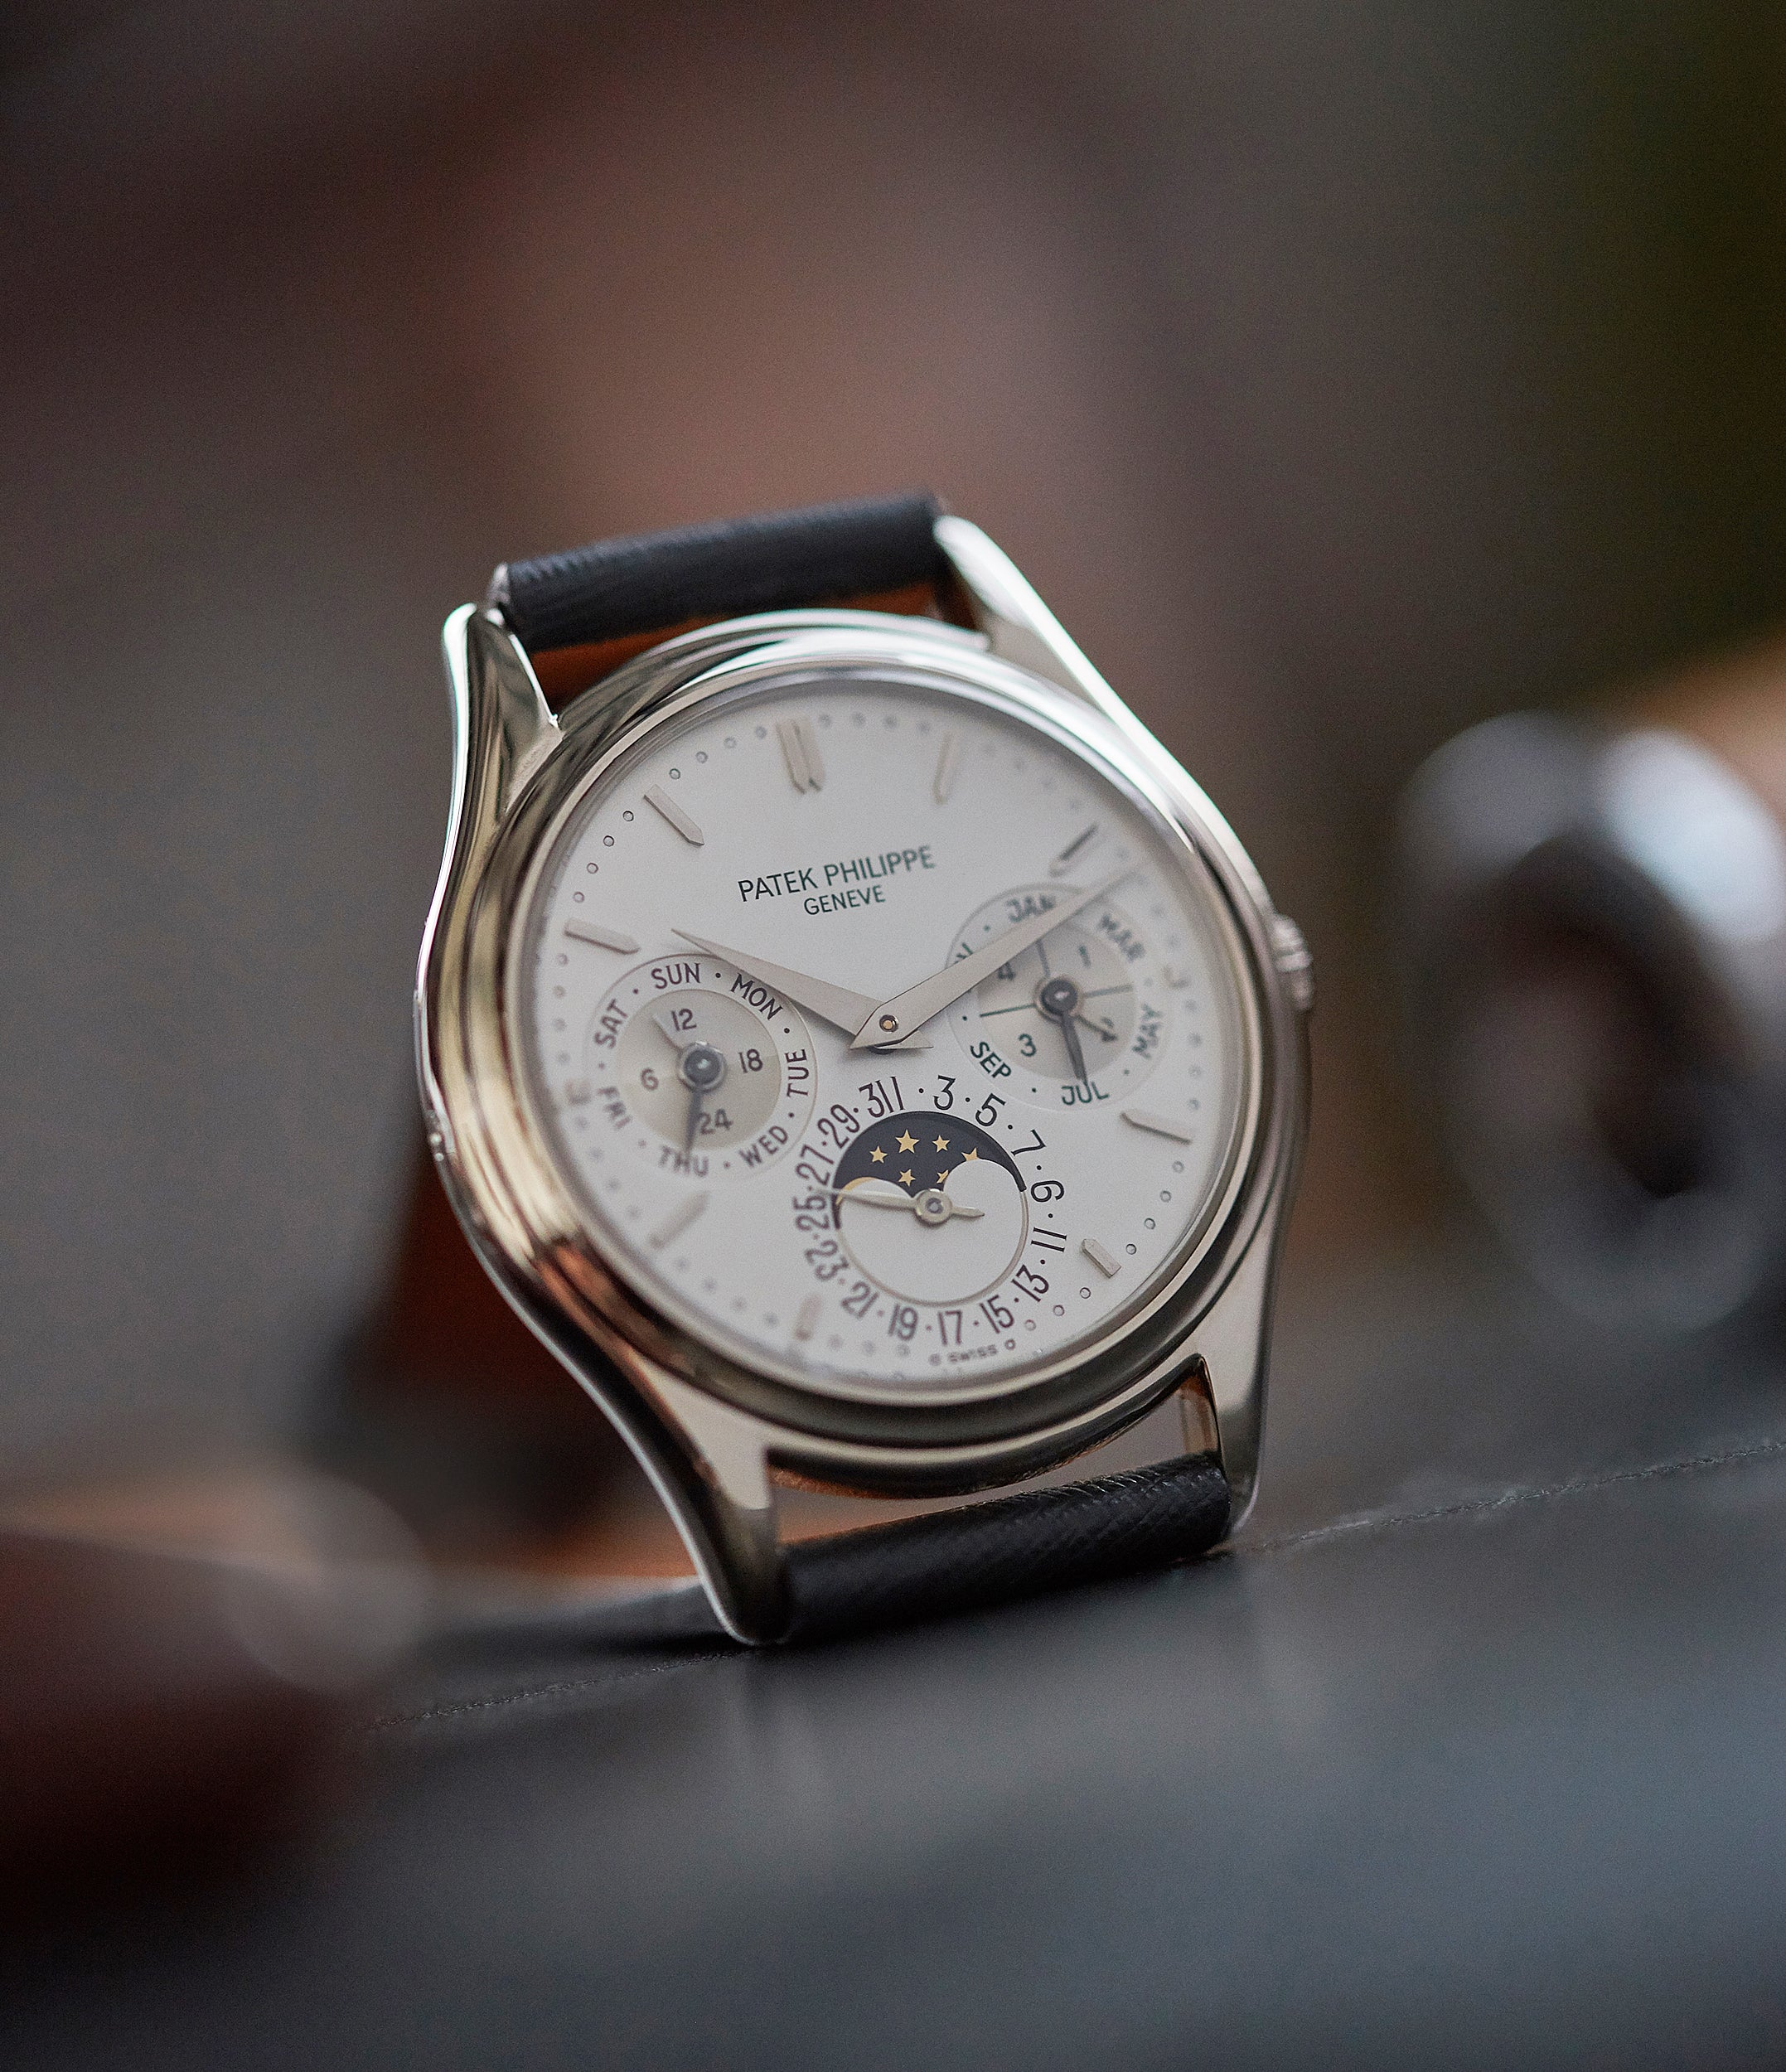 buy vintage Patek Philippe 3940G Perpetual Calendar vintage rare watch English dial for sale online at A Collected Man London UK specialist of rare watches